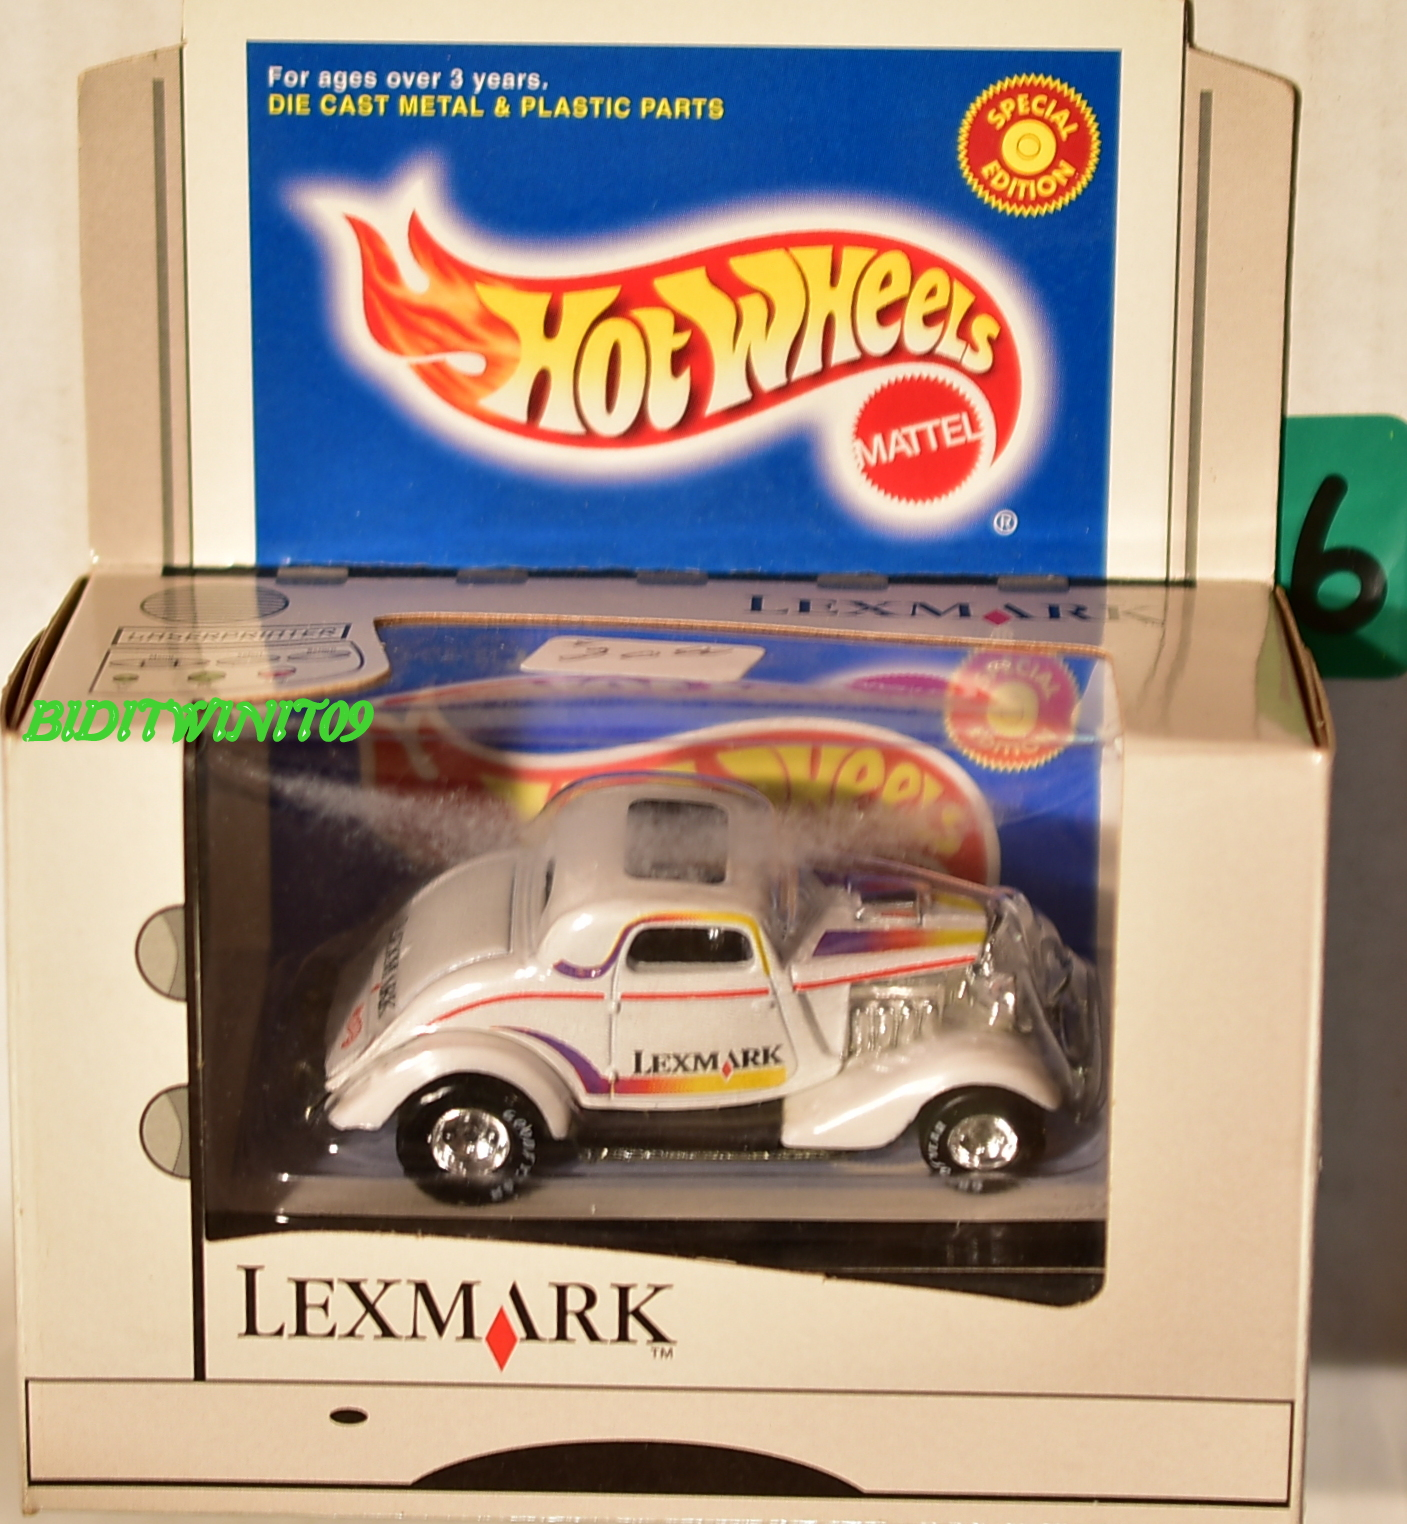 HOT WHEELS LEXMARK EXCLUSIVE 3-WINDOW COUPE 23539 LIMITED EDITION E+